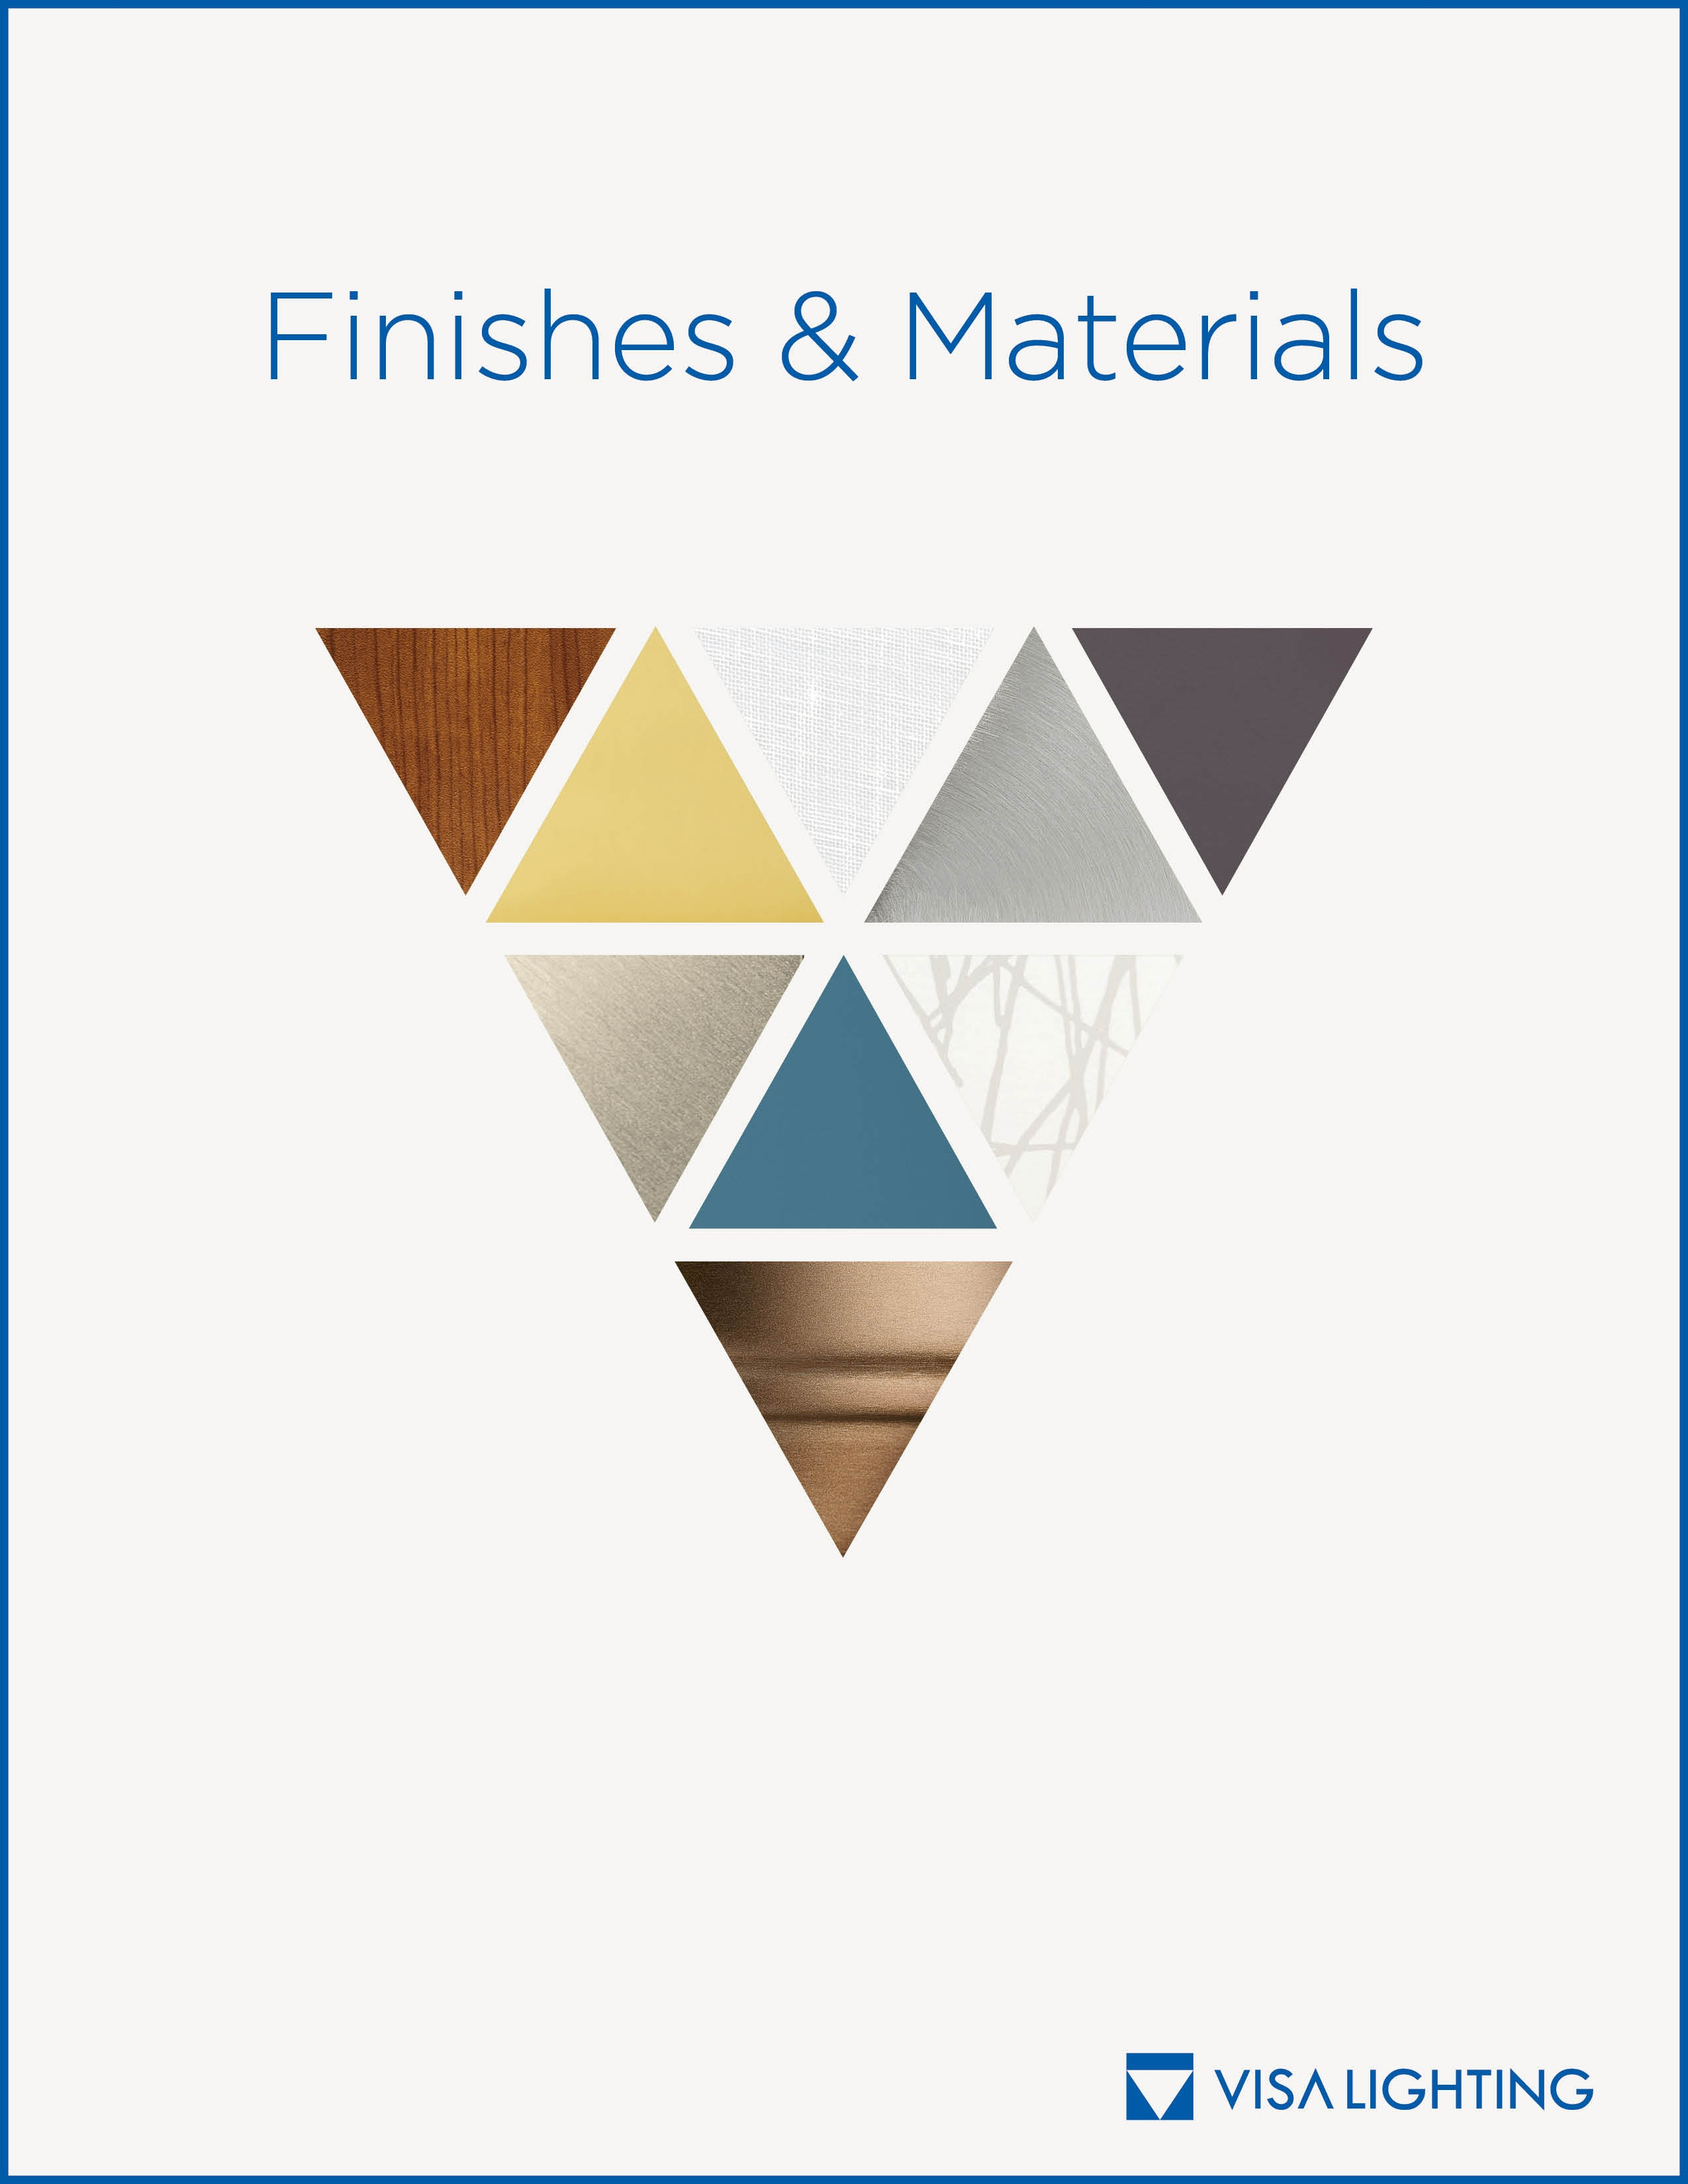 Materials and finishes brochure cover